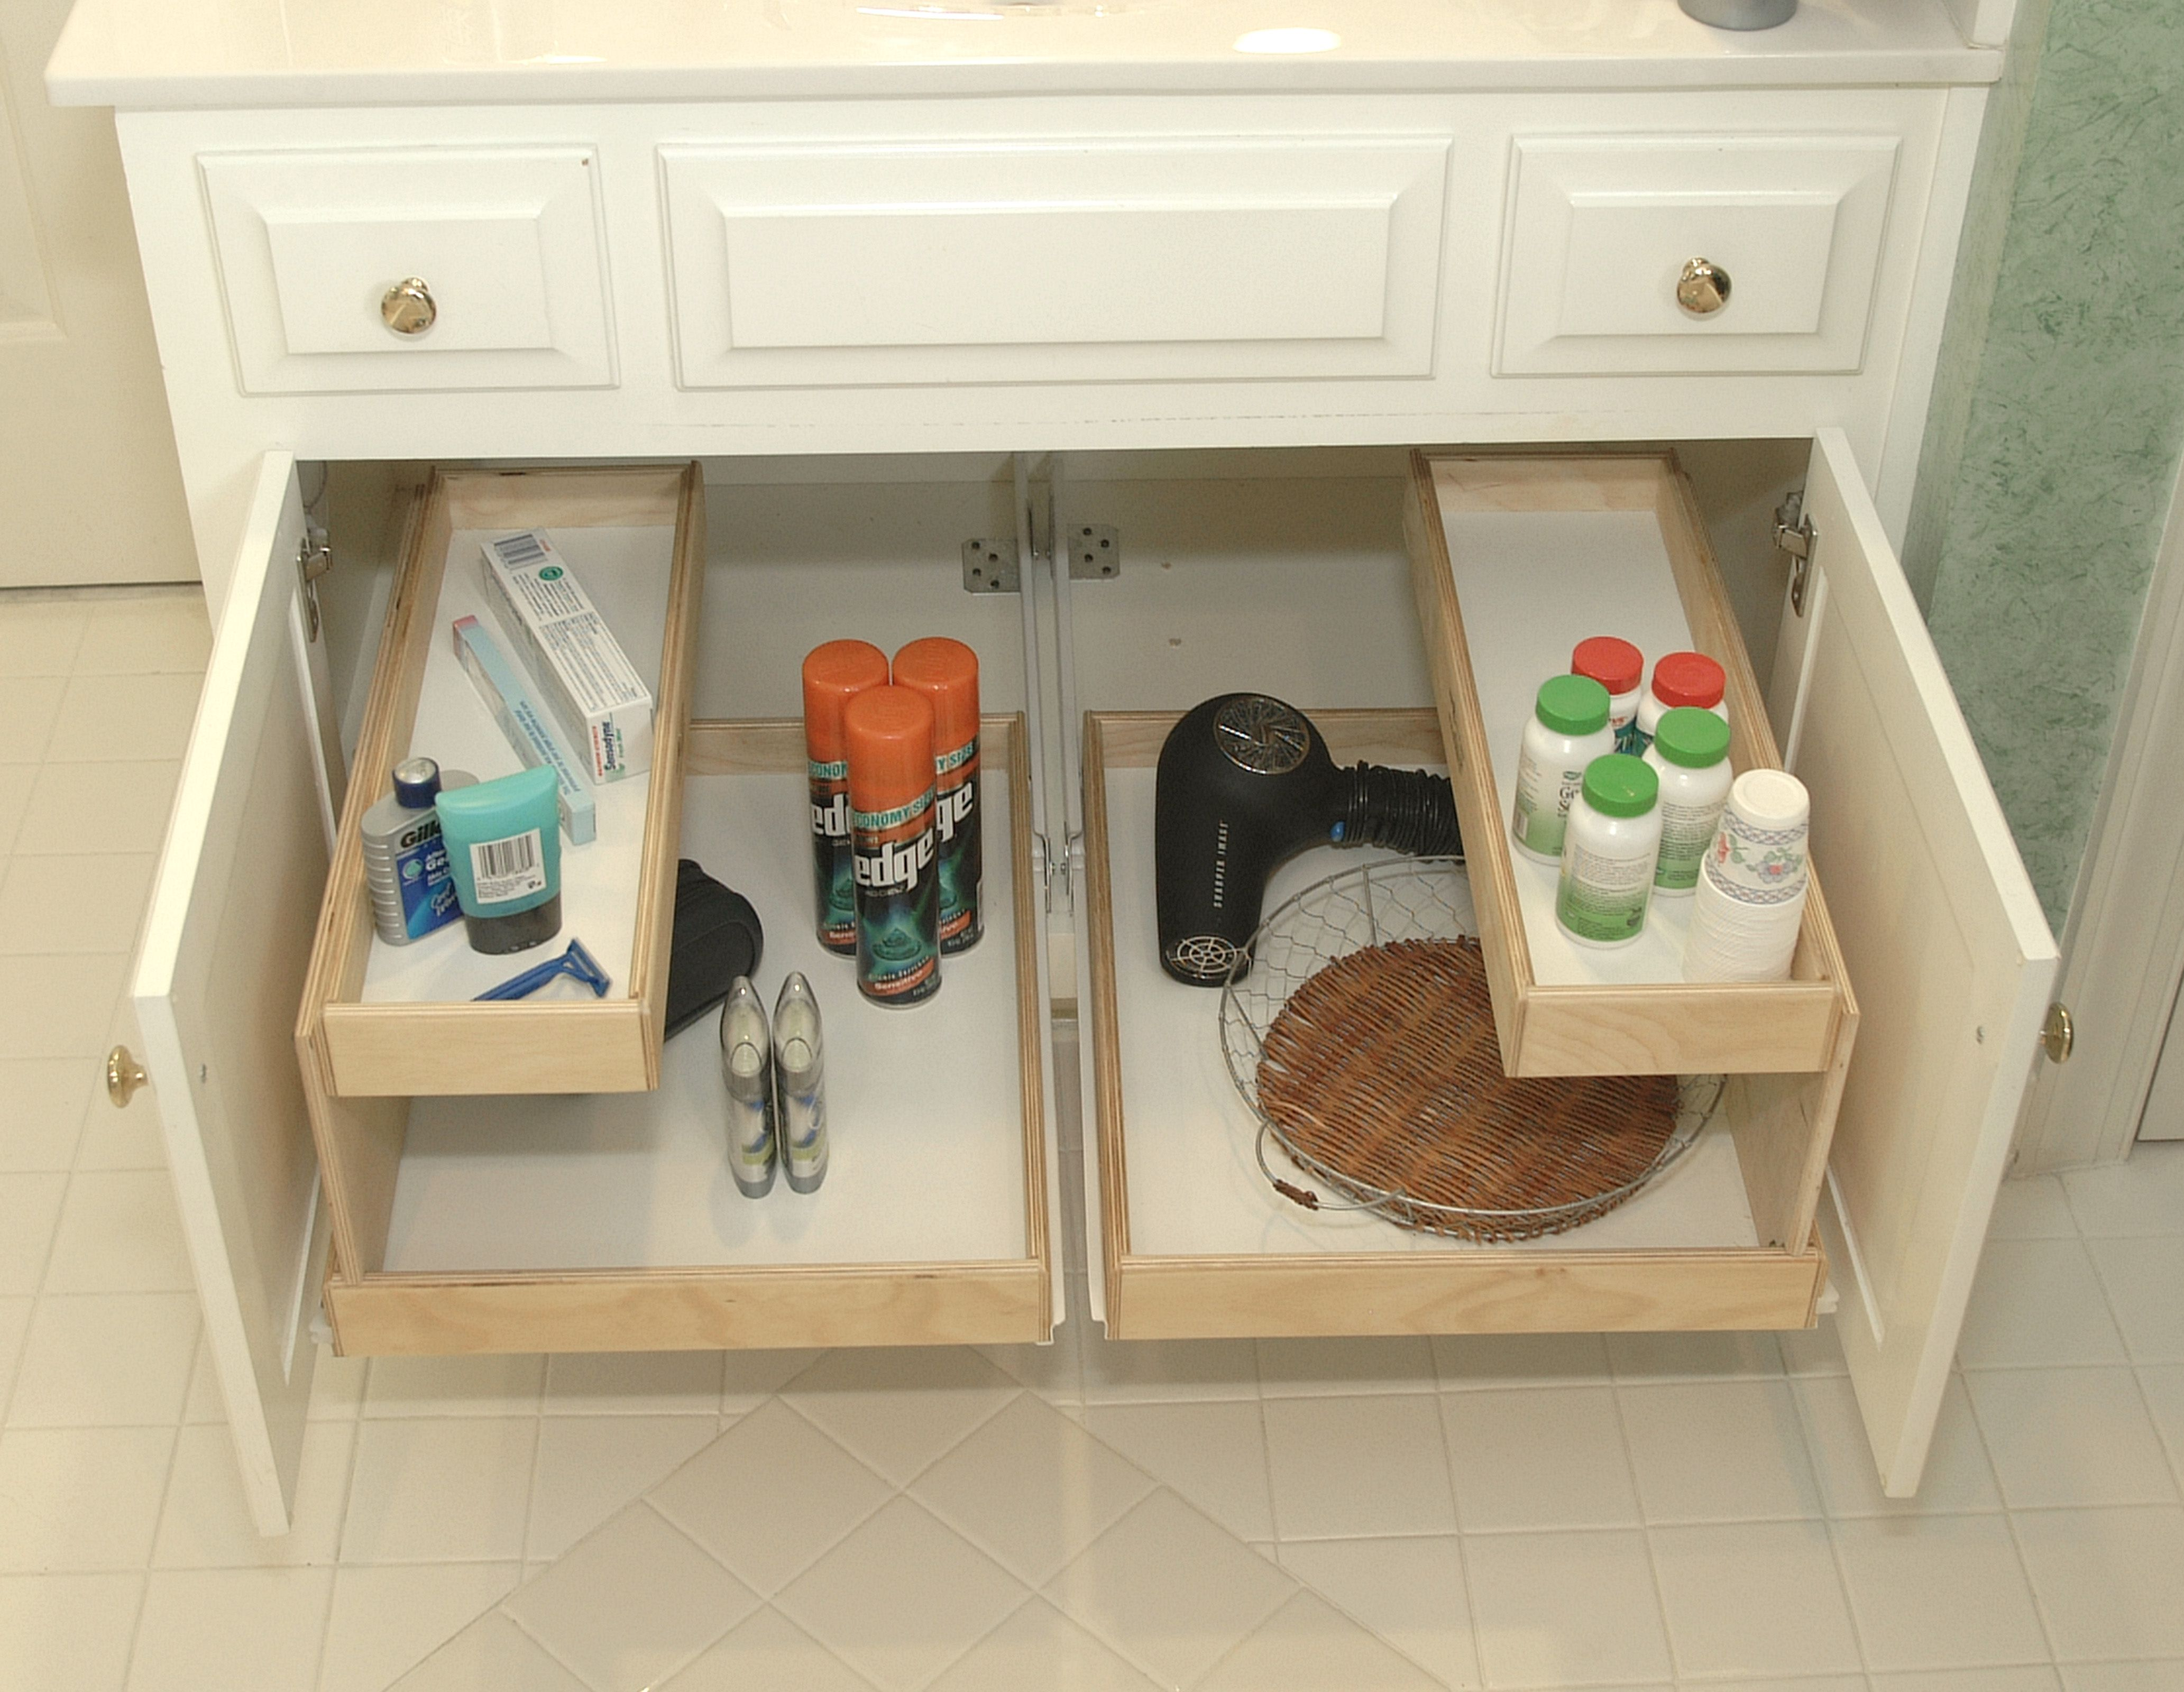 Vanity Storage Bathroomrolloutshelvesblogaustin For The - Rolled towel storage for small bathroom ideas